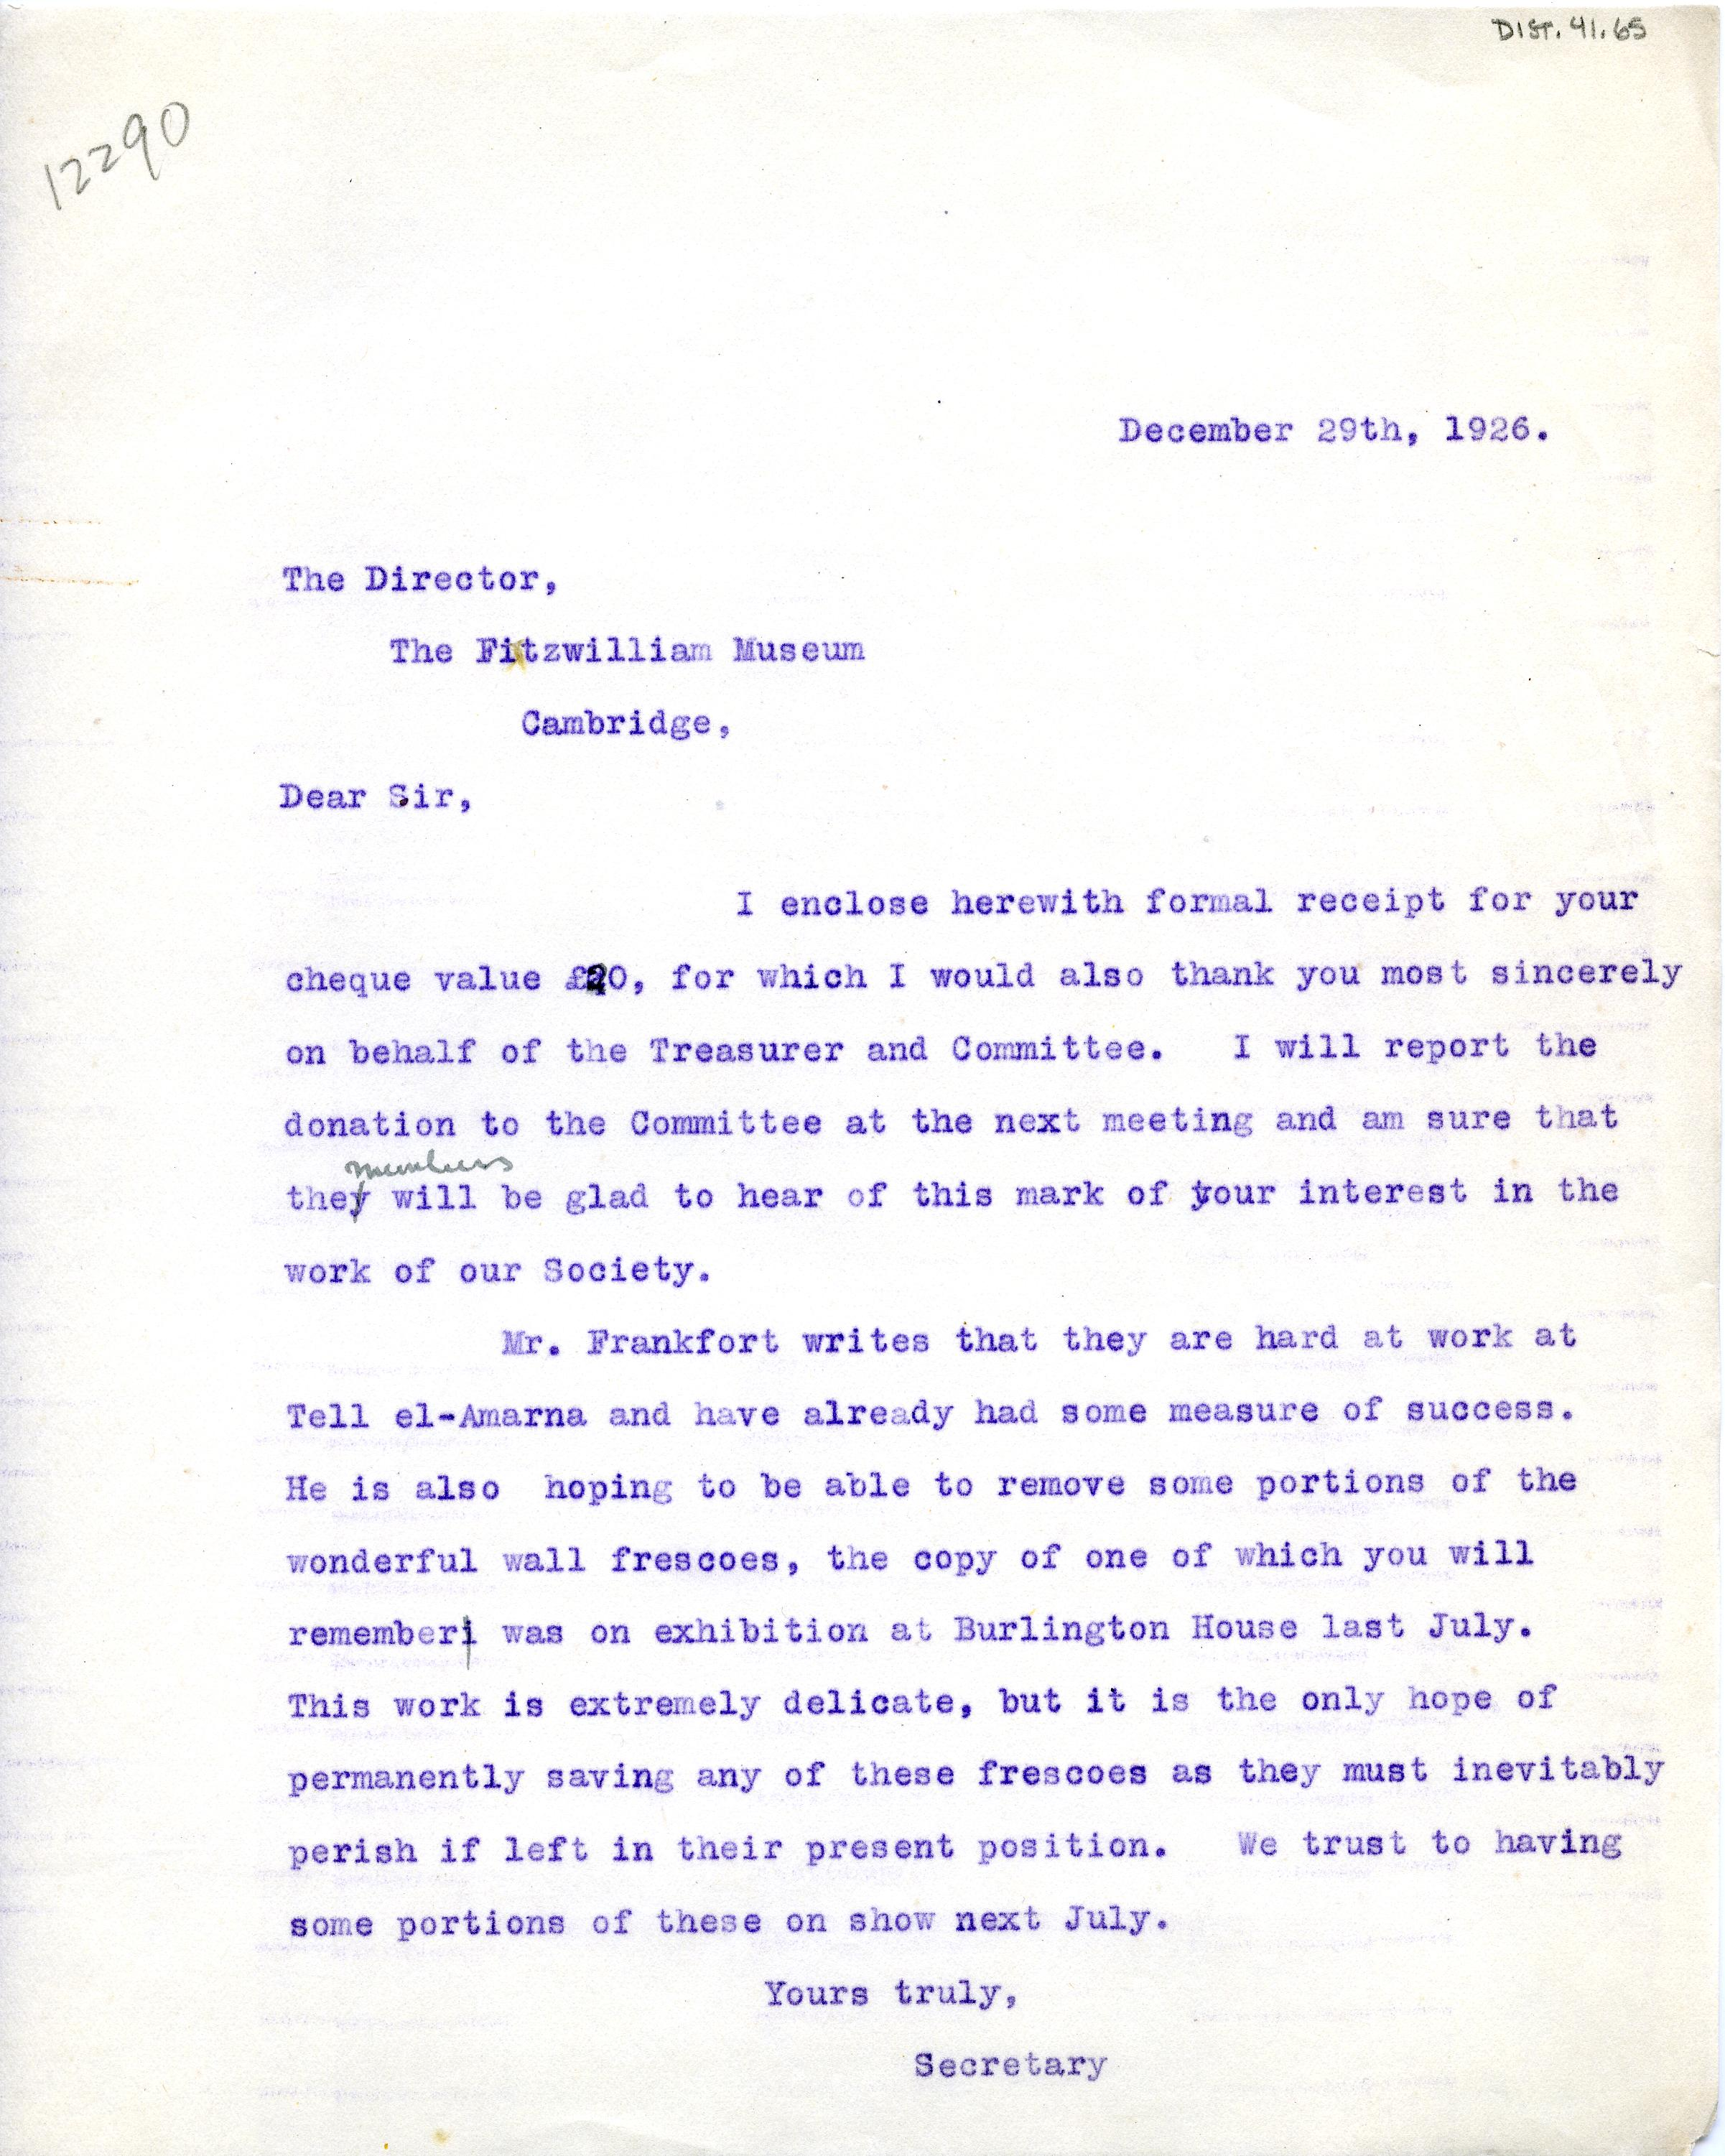 1922-76 Miscellaneous correspondence with museums DIST.41.65